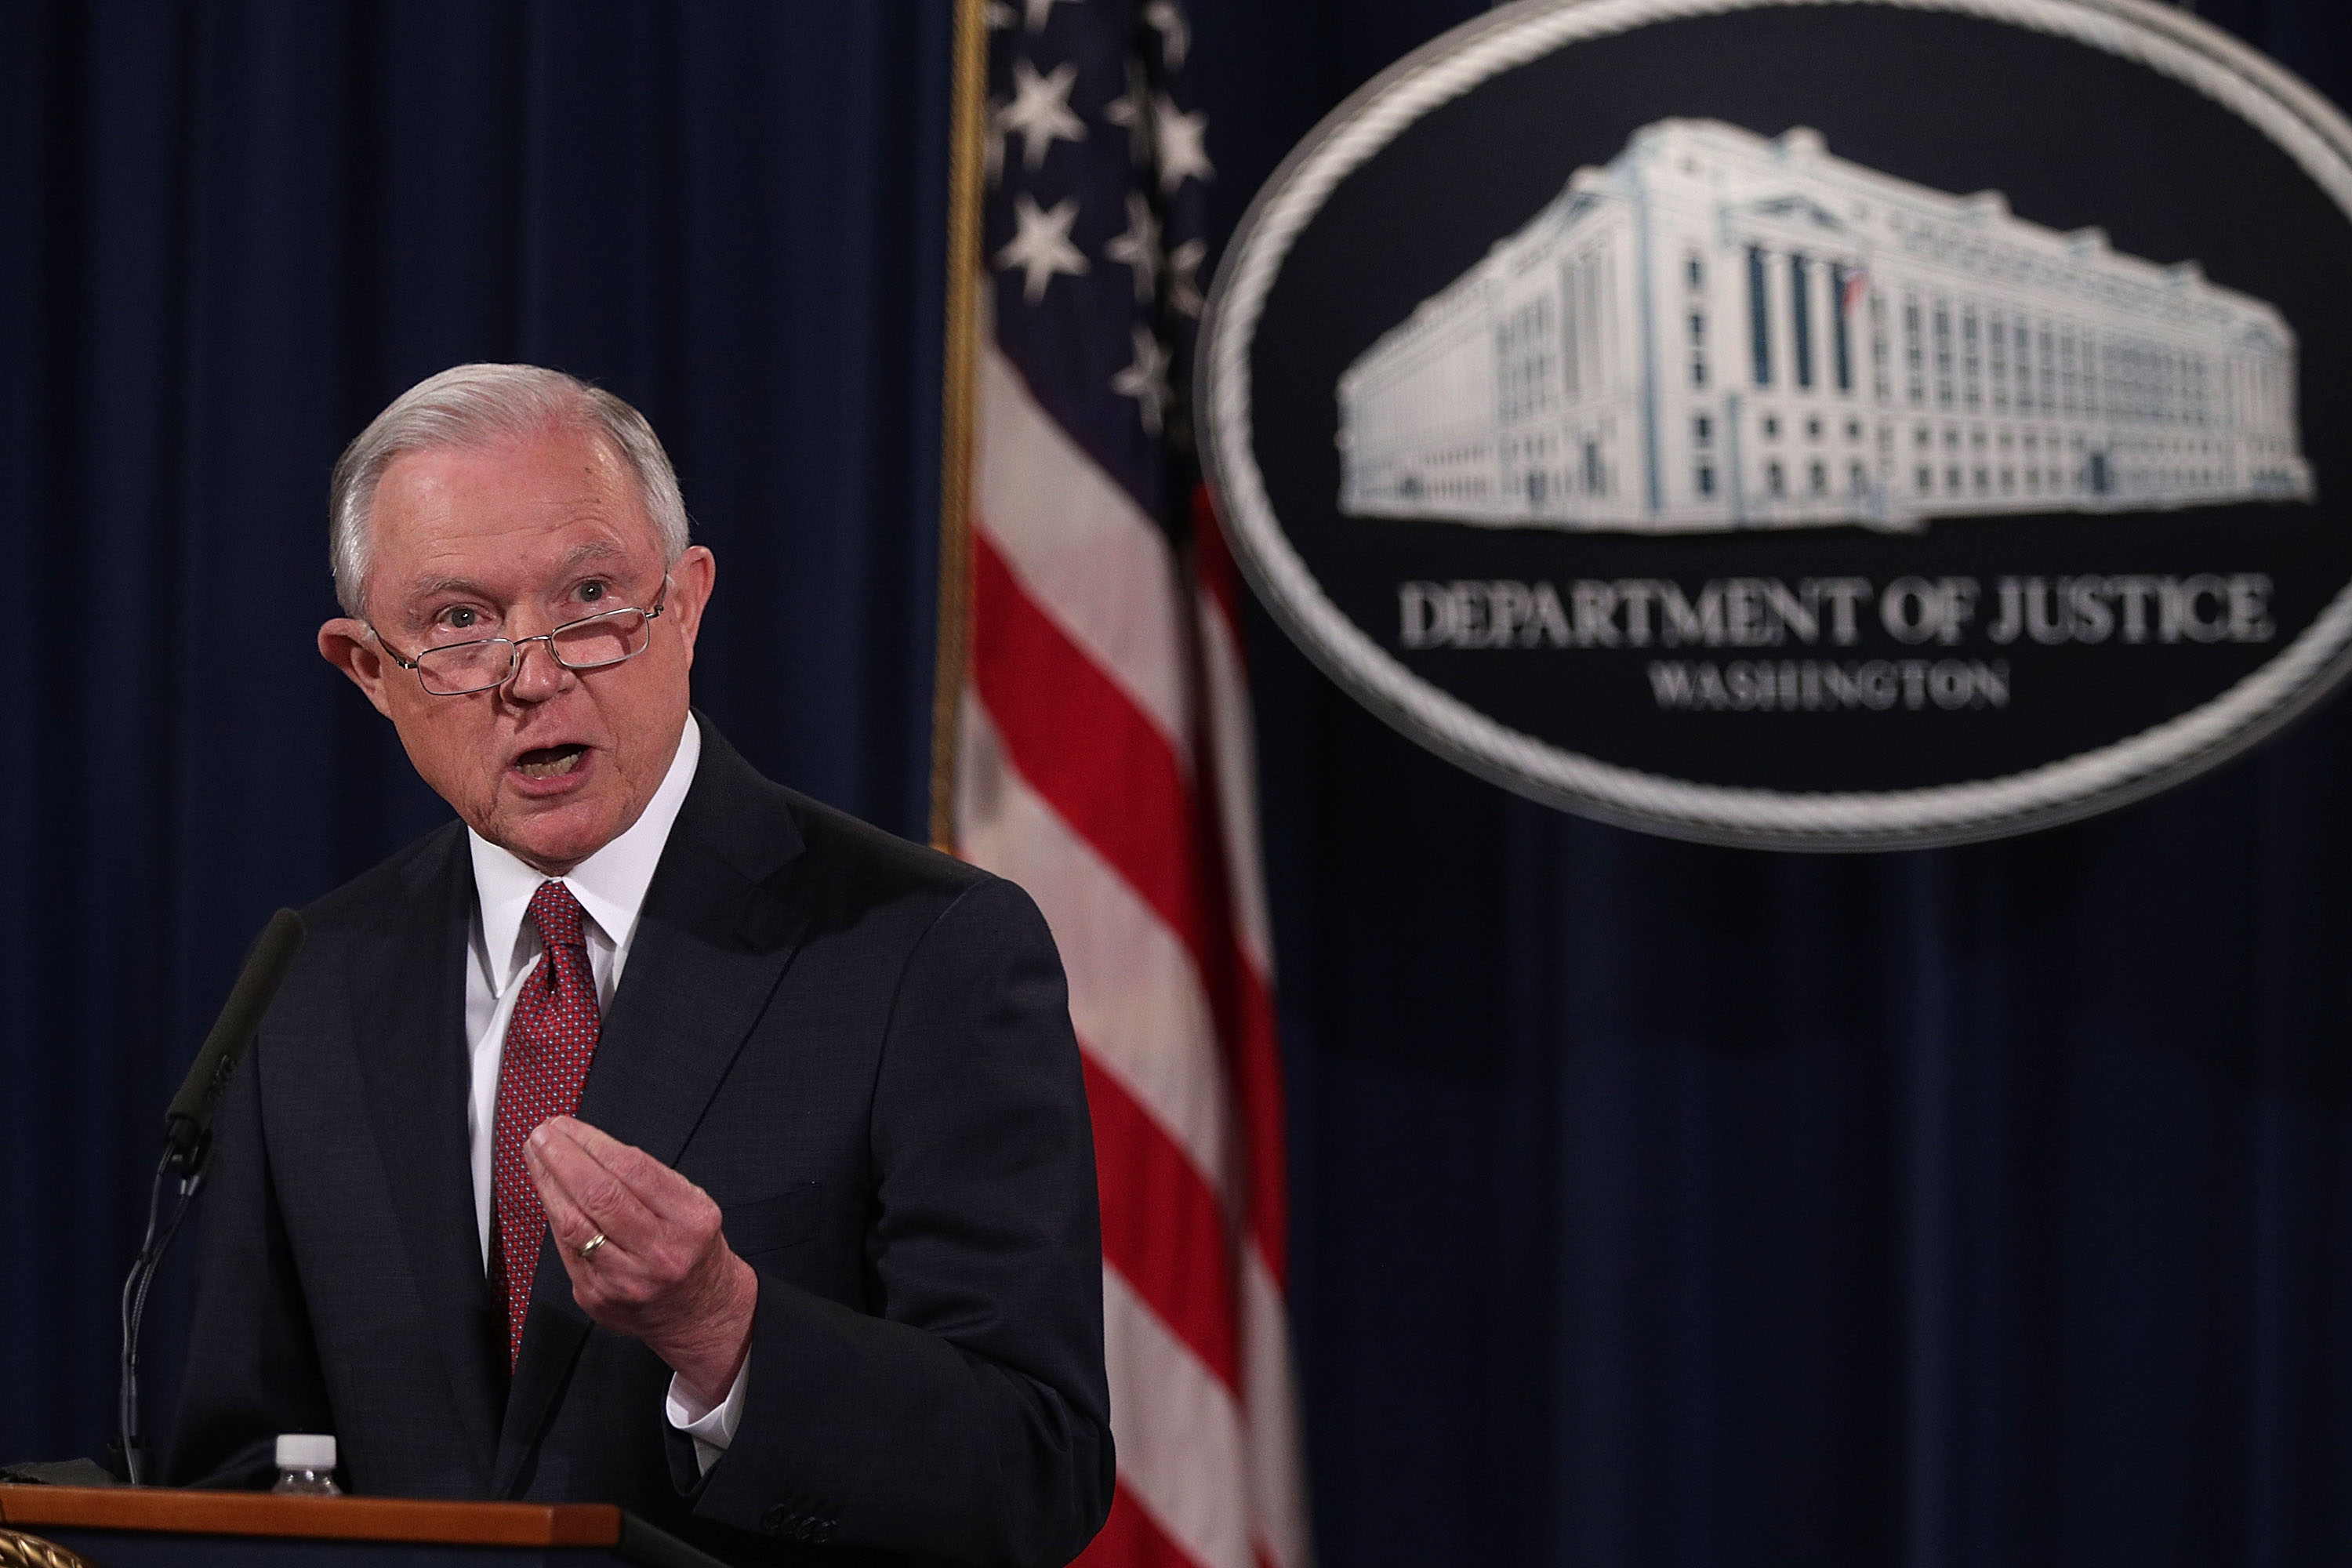 Attorney General Jeff Sessions announces the end to the Obama era Deferred Action for Childhood Arrivals (DACA) program, in Washington on Sept. 5, 2017. (Alex Wong/Getty Images)